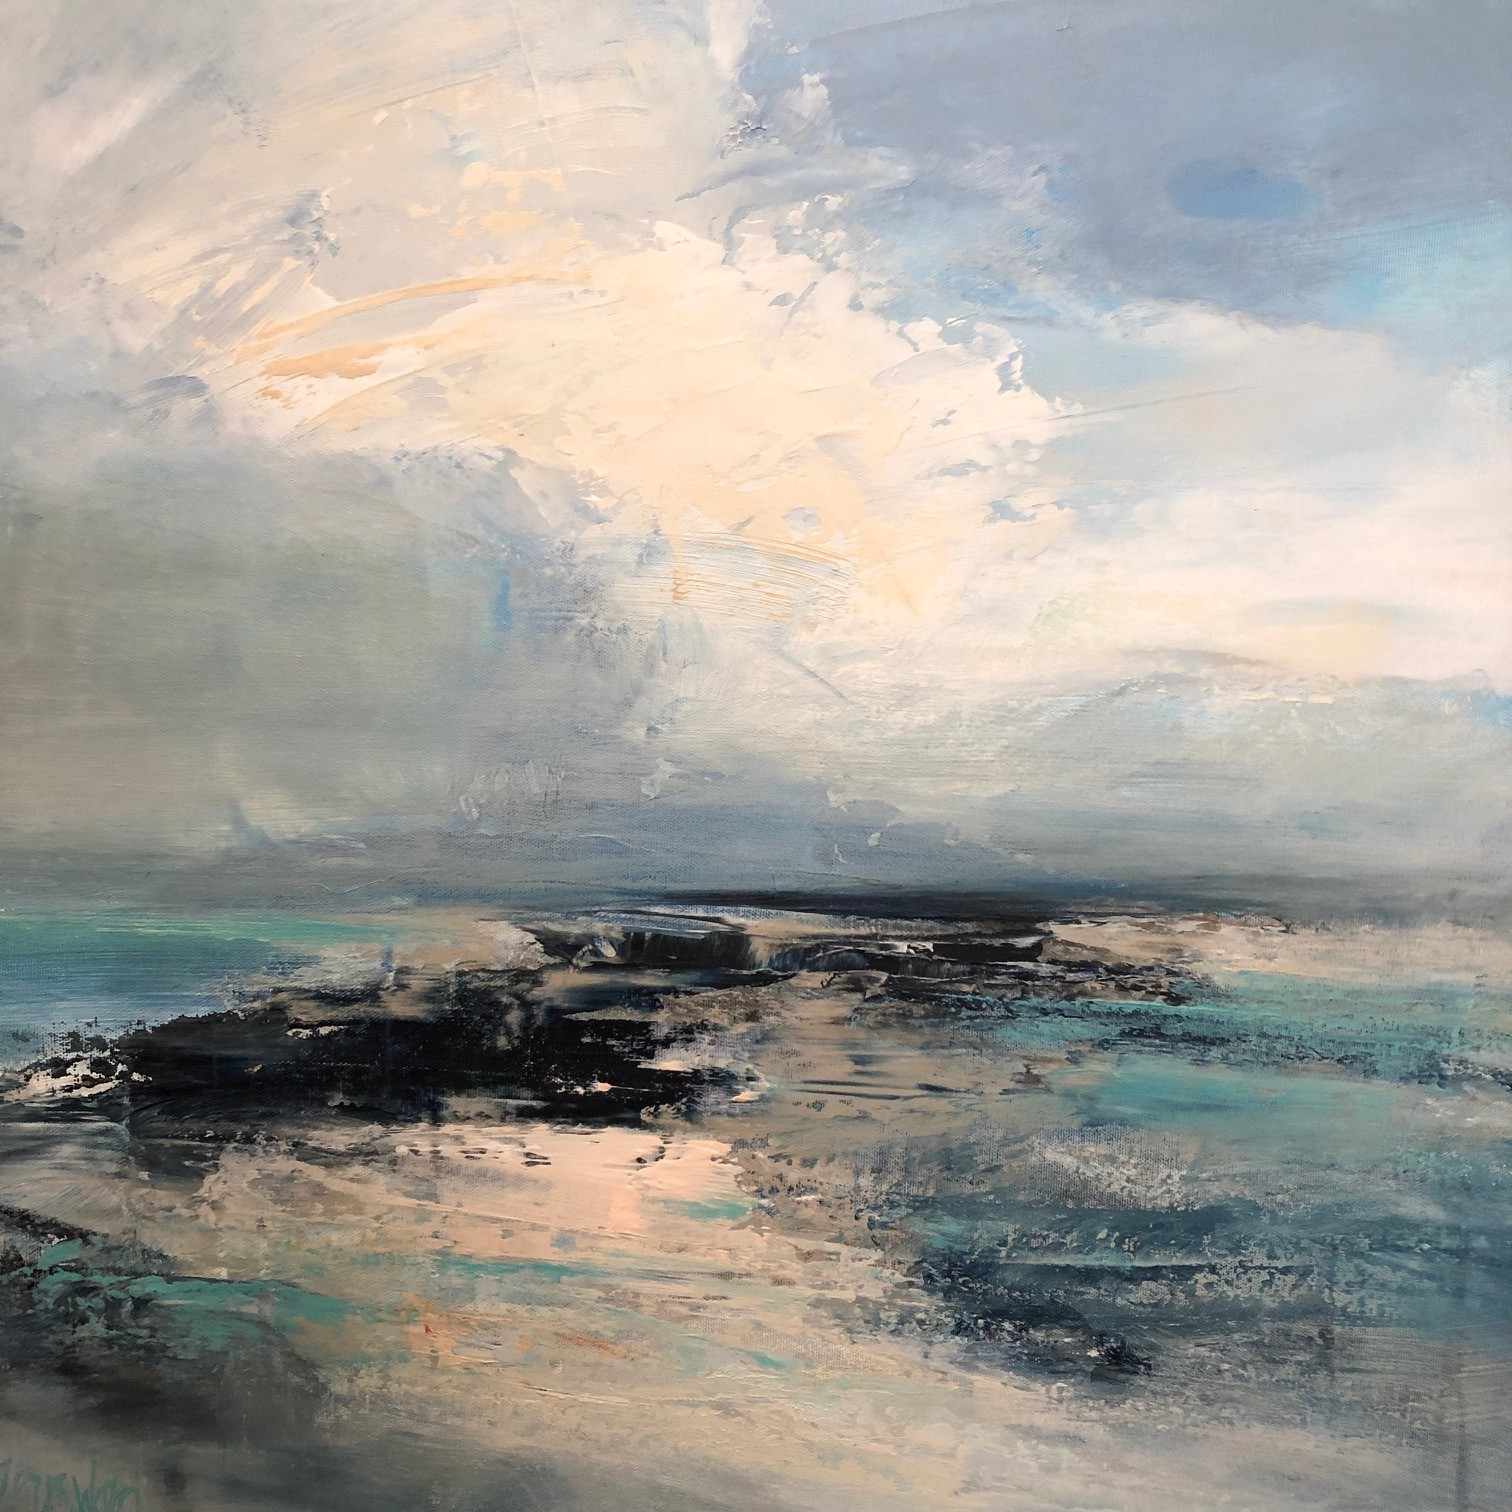 "<span class=""link fancybox-details-link""><a href=""/artists/41-erin-ward/works/6593-erin-ward-beach-late-afternoon-2019/"">View Detail Page</a></span><div class=""artist""><strong>Erin Ward</strong></div> <div class=""title""><em>Beach, Late Afternoon</em>, 2019</div> <div class=""medium"">Acrylic on canvas</div> <div class=""dimensions"">h. 61 cm x w. 61 cm </div><div class=""copyright_line"">Ownart: £119 x 10 Months, 0% APR</div>"